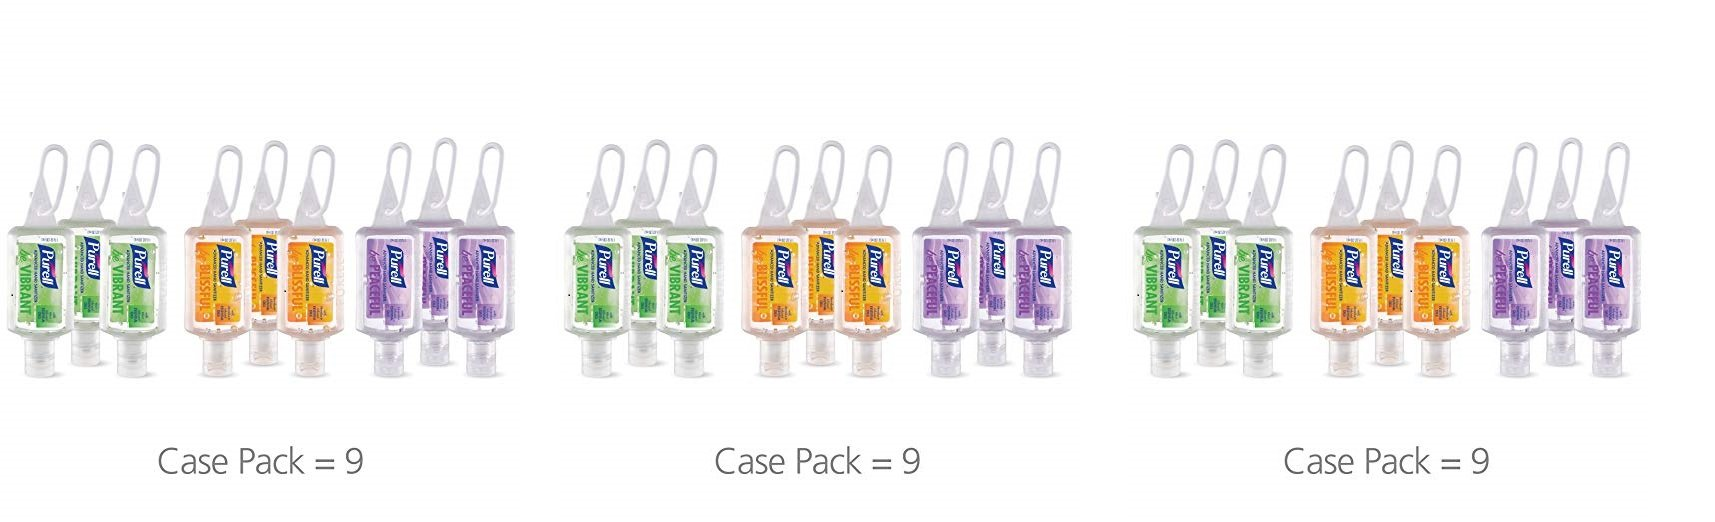 Purell 3900-09-ECME17 Advanced Hand Sanitizer Essentials Portable Bottle - Infused with Essential Oils, 1oz. Travel Sized Jelly Wrap Bottles (3 X Pack of 9)